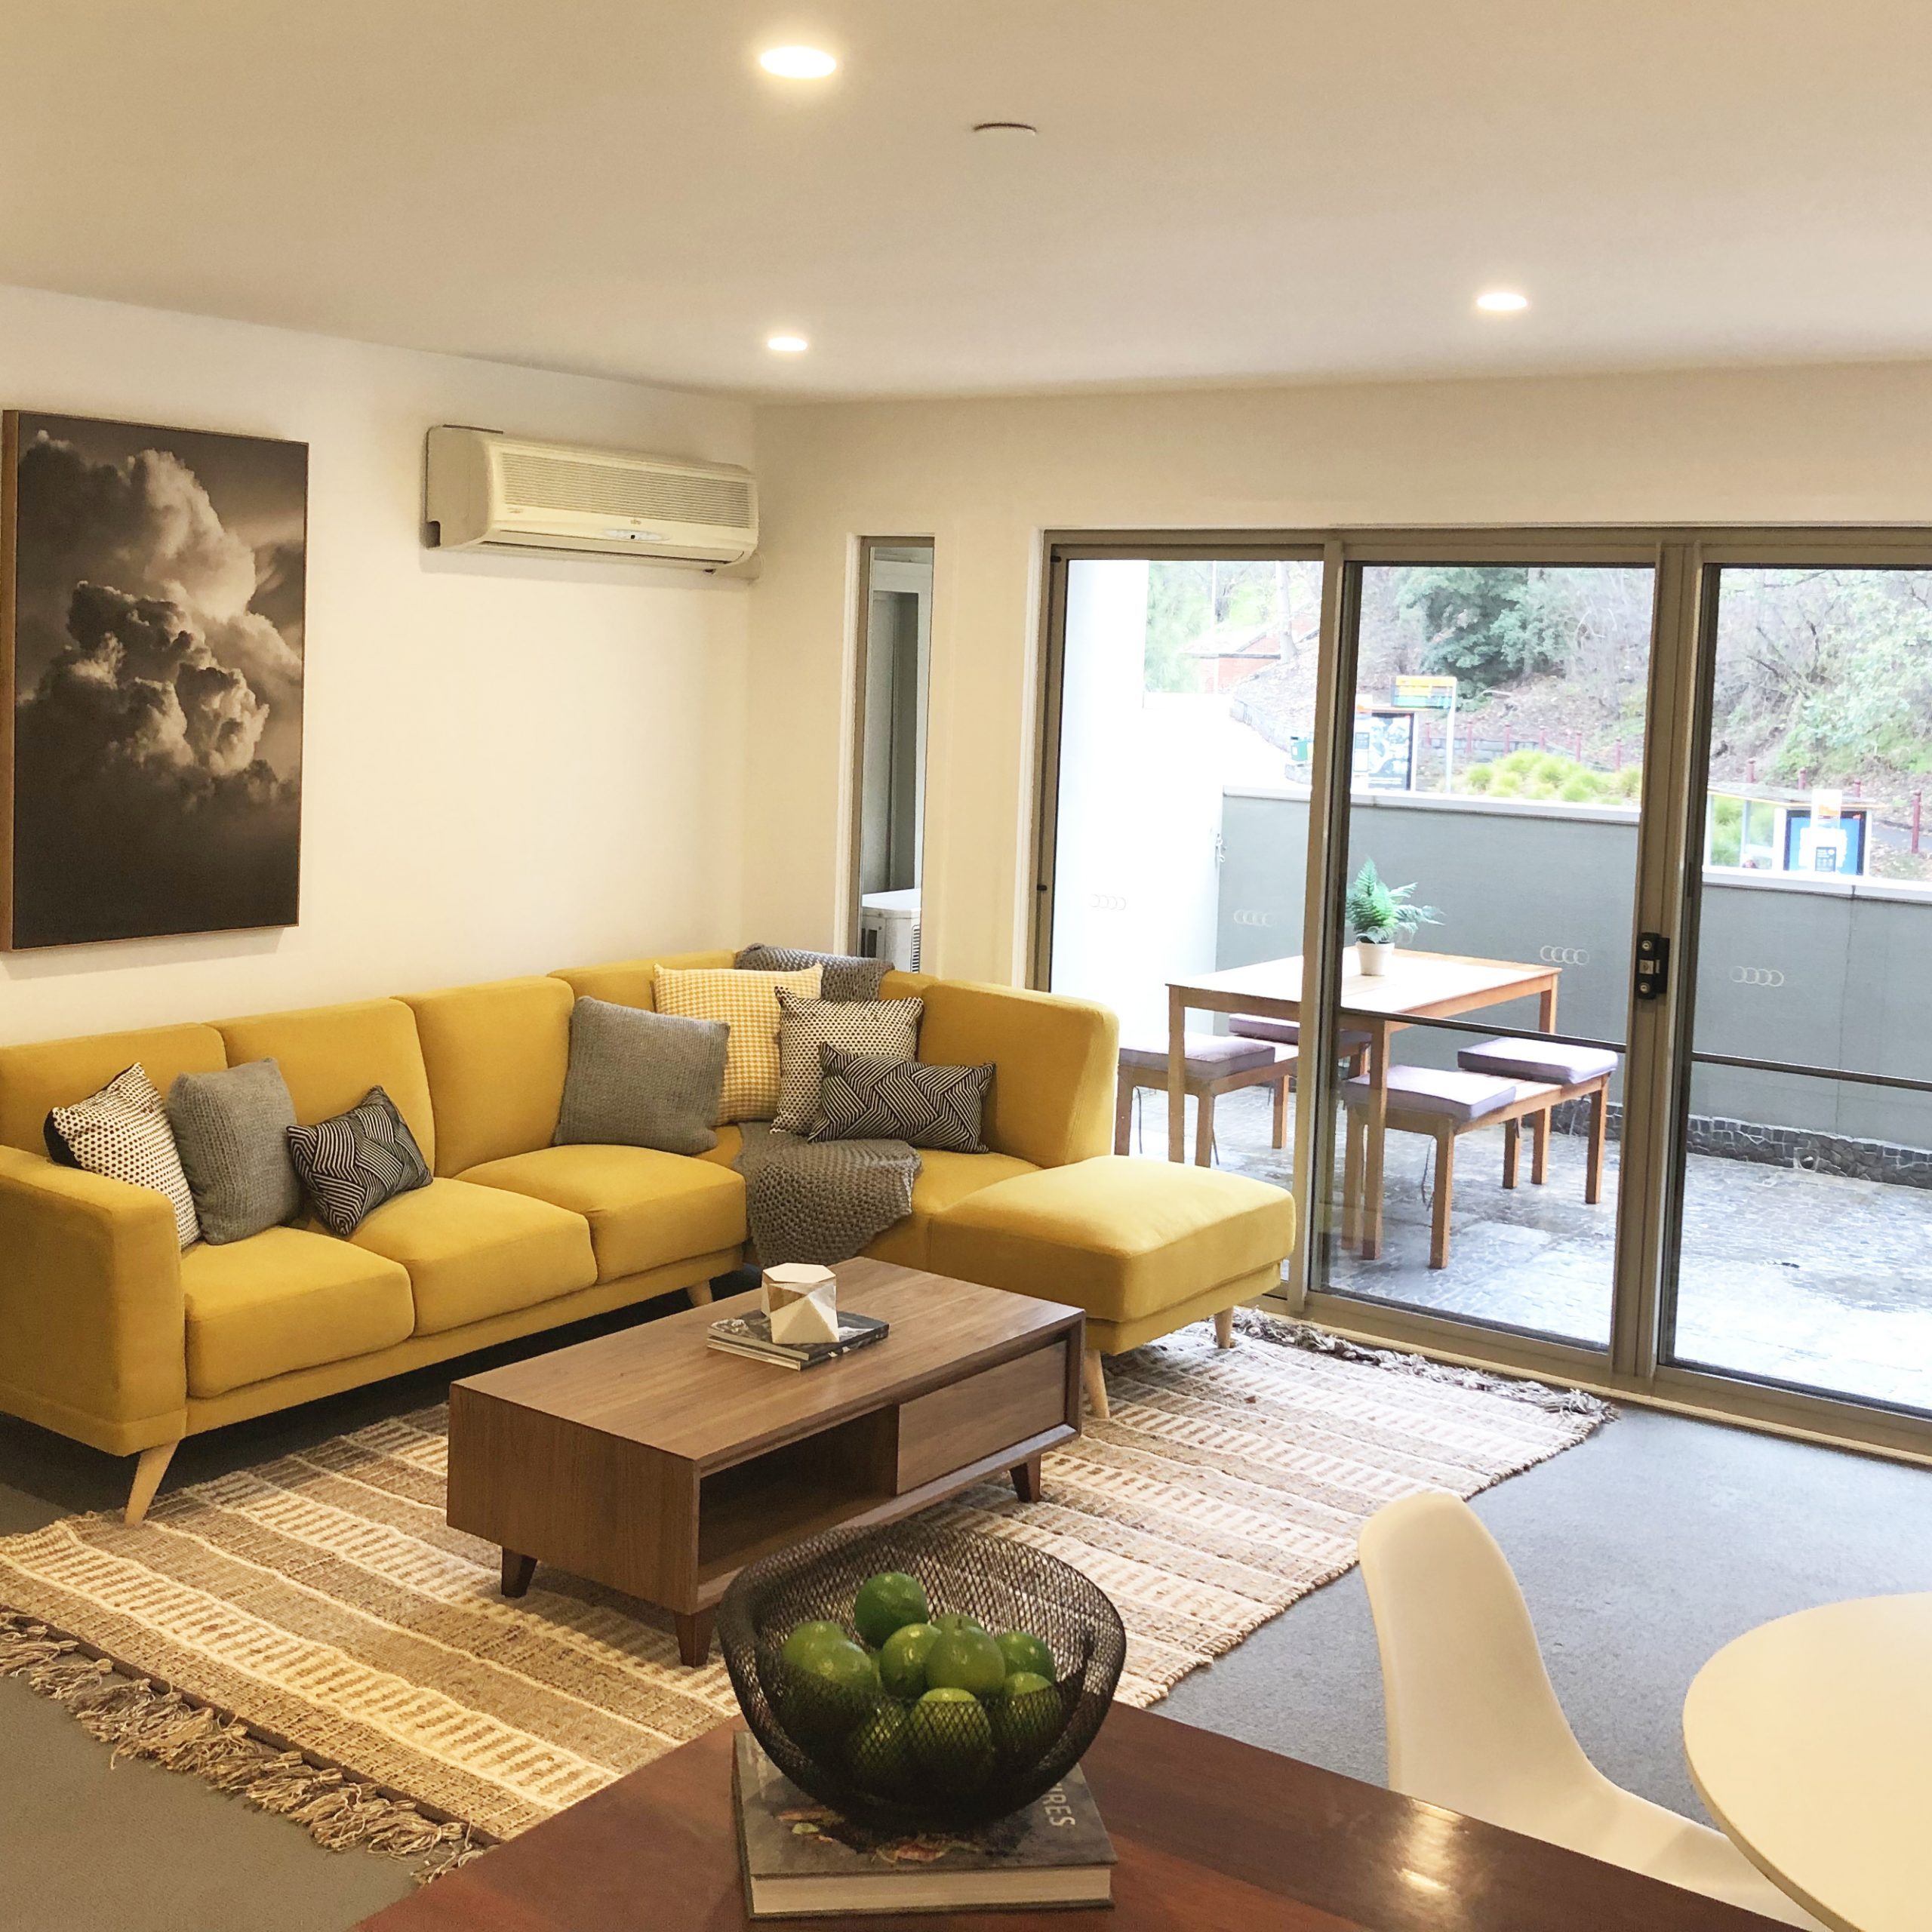 Apartment Living Room - Melbourne Home Staging - Leeder Interiors